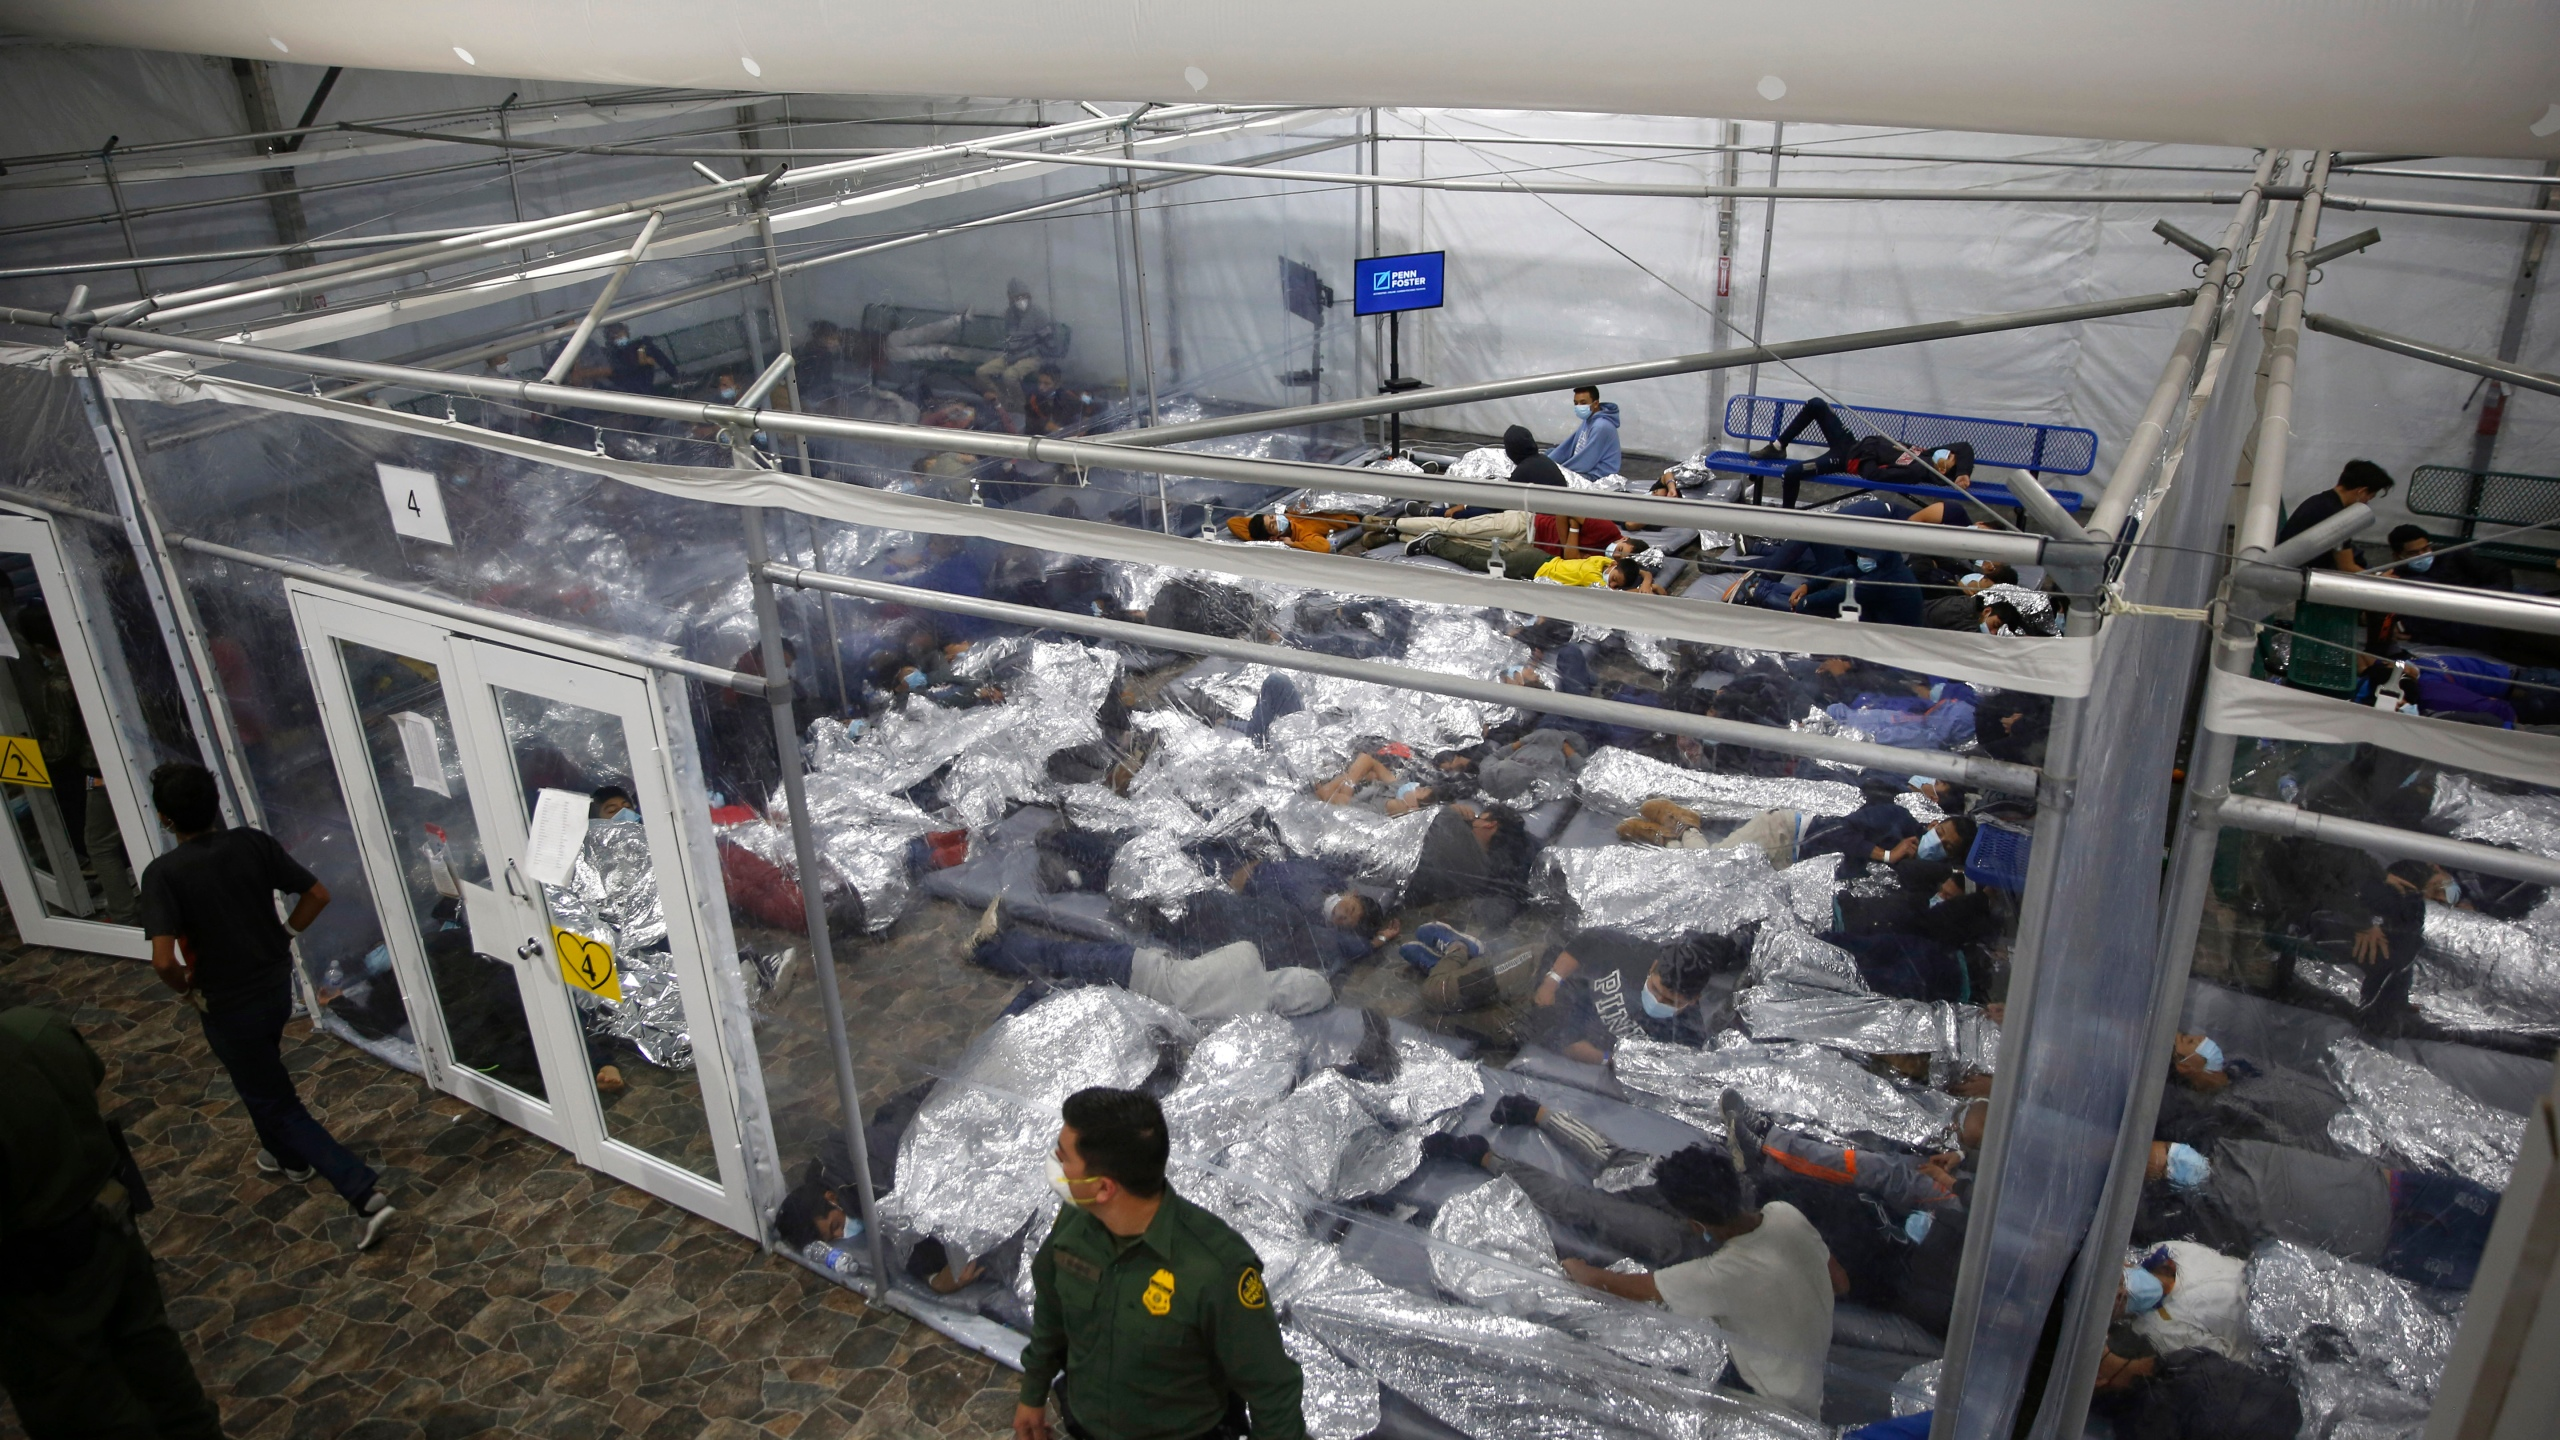 In this March 30, 2021, file photo, young minors lie inside a pod at the Donna Department of Homeland Security holding facility, the main detention center for unaccompanied children in the Rio Grande Valley run by U.S. Customs and Border Protection (CBP), in Donna, Texas. U.S. authorities say they picked up nearly 19,000 children traveling alone across the Mexican border in March. It's the largest monthly number ever recorded and a major test for President Joe Biden as he reverses many of his predecessor's hardline immigration tactics. (AP Photo/Dario Lopez-Mills, Pool, File)